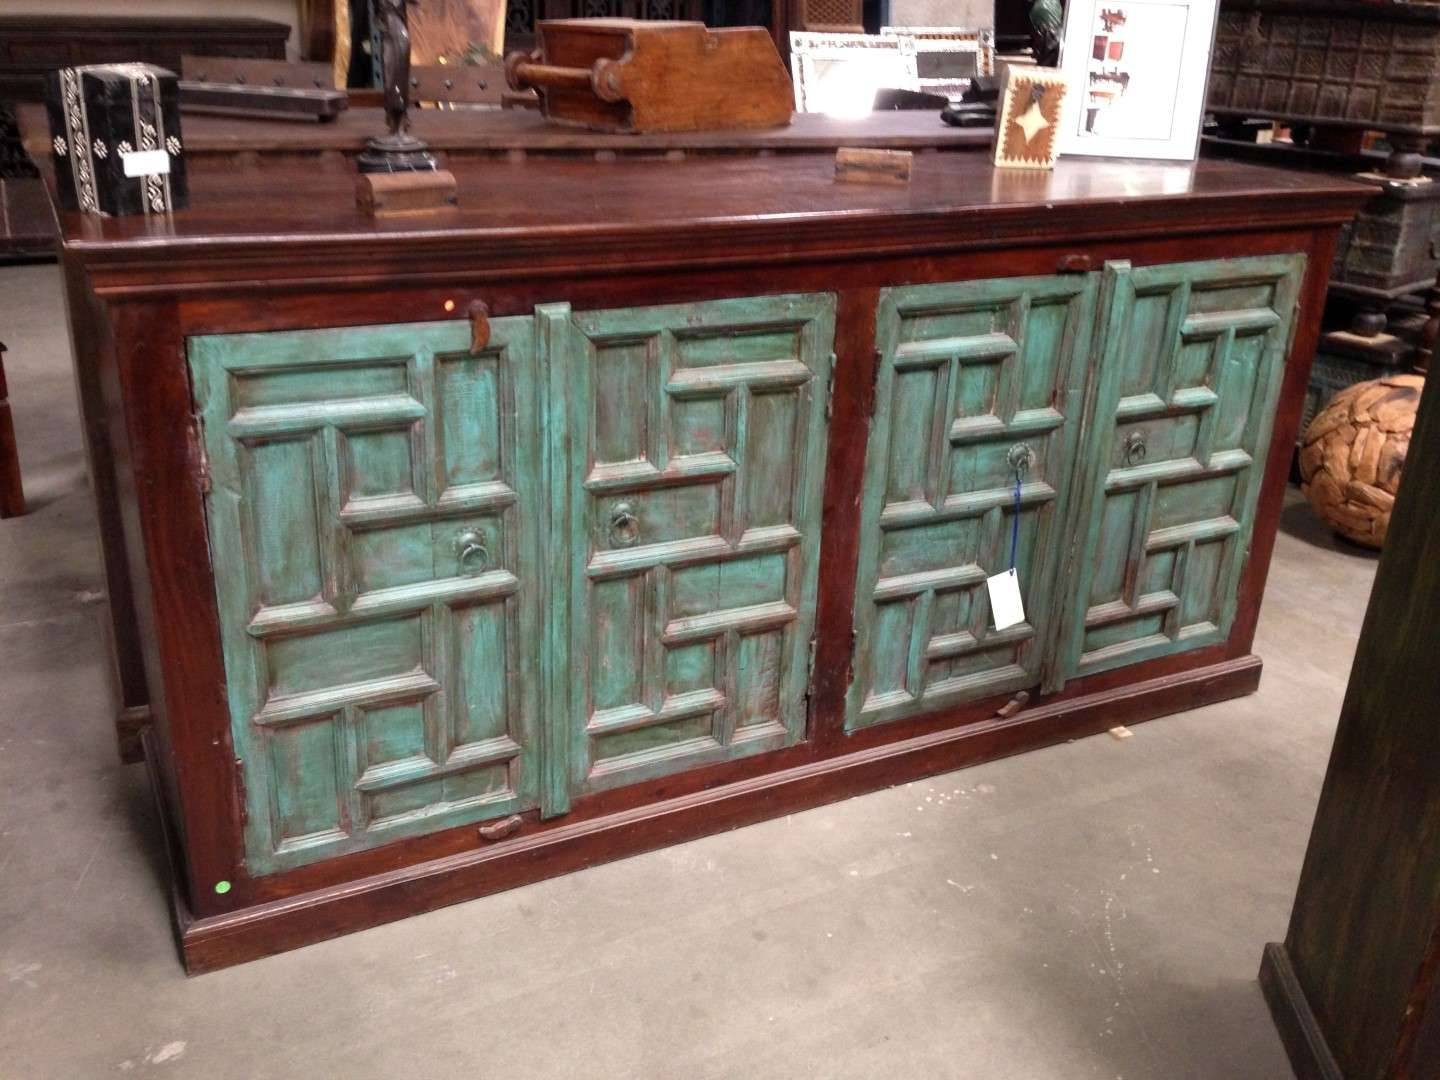 Imported Rustic Sideboards From India, China, Indonesia And Mexico In Indian Sideboards Furniture (View 8 of 20)